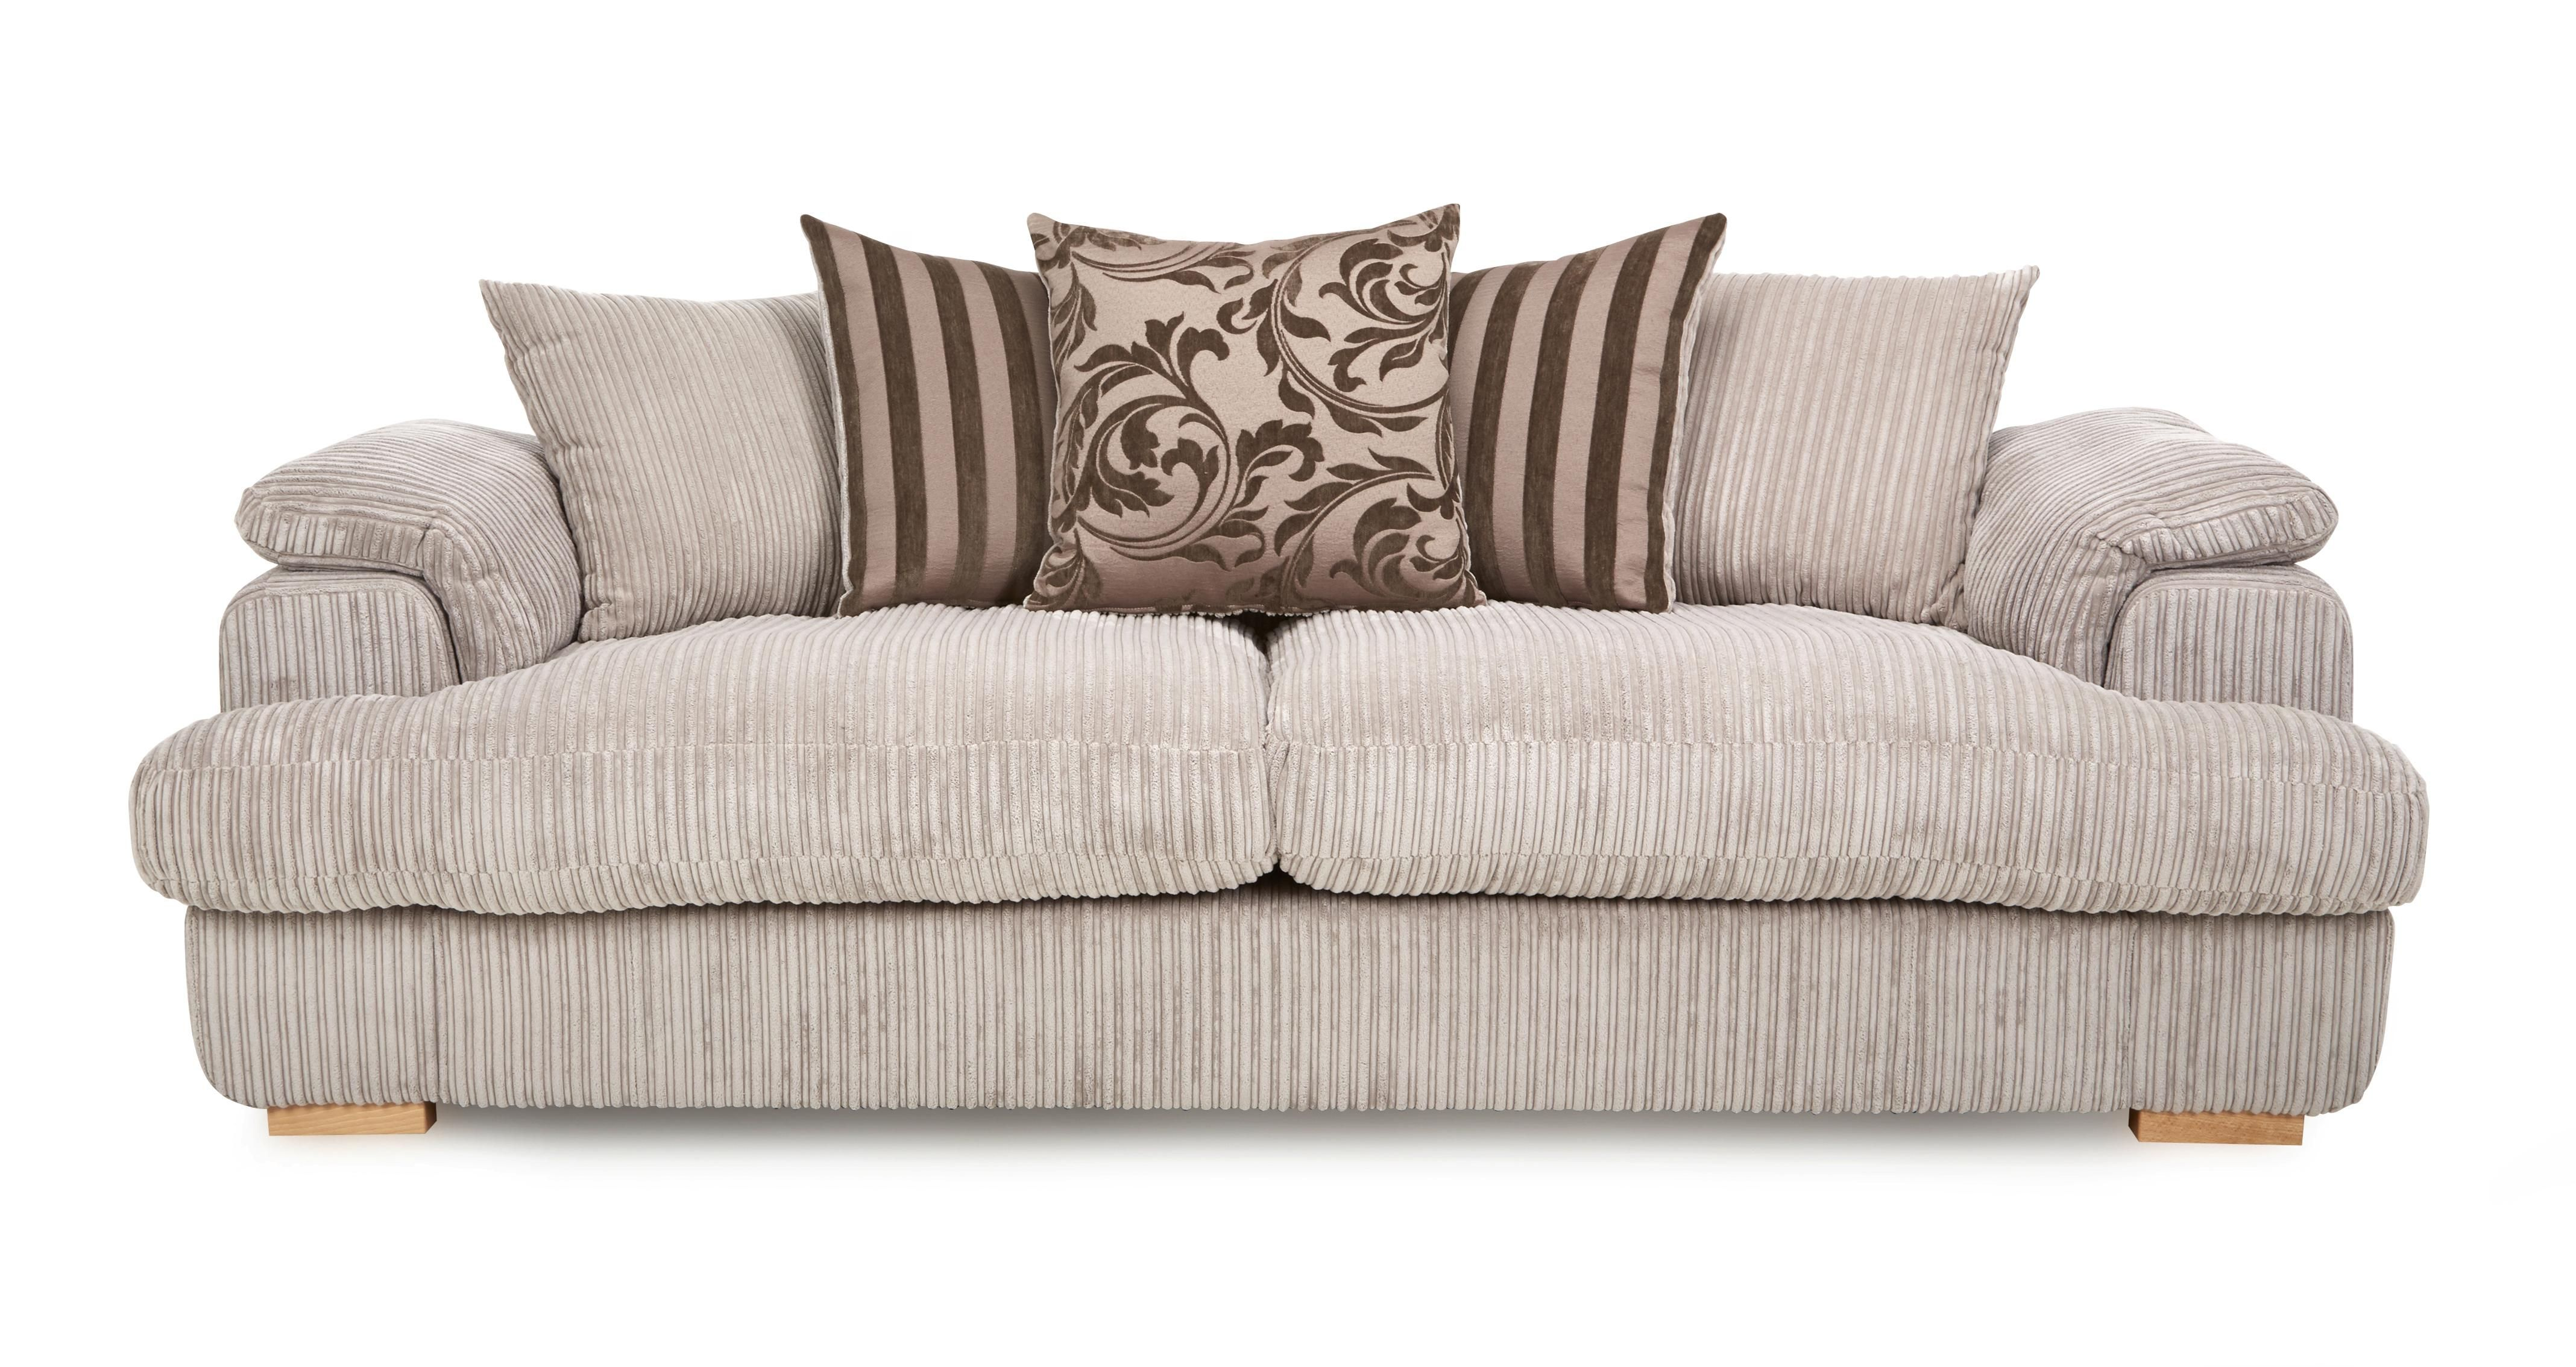 Dfs 4 Seater Sofa Celine In 2020 Sofa Sterling Furniture Furniture